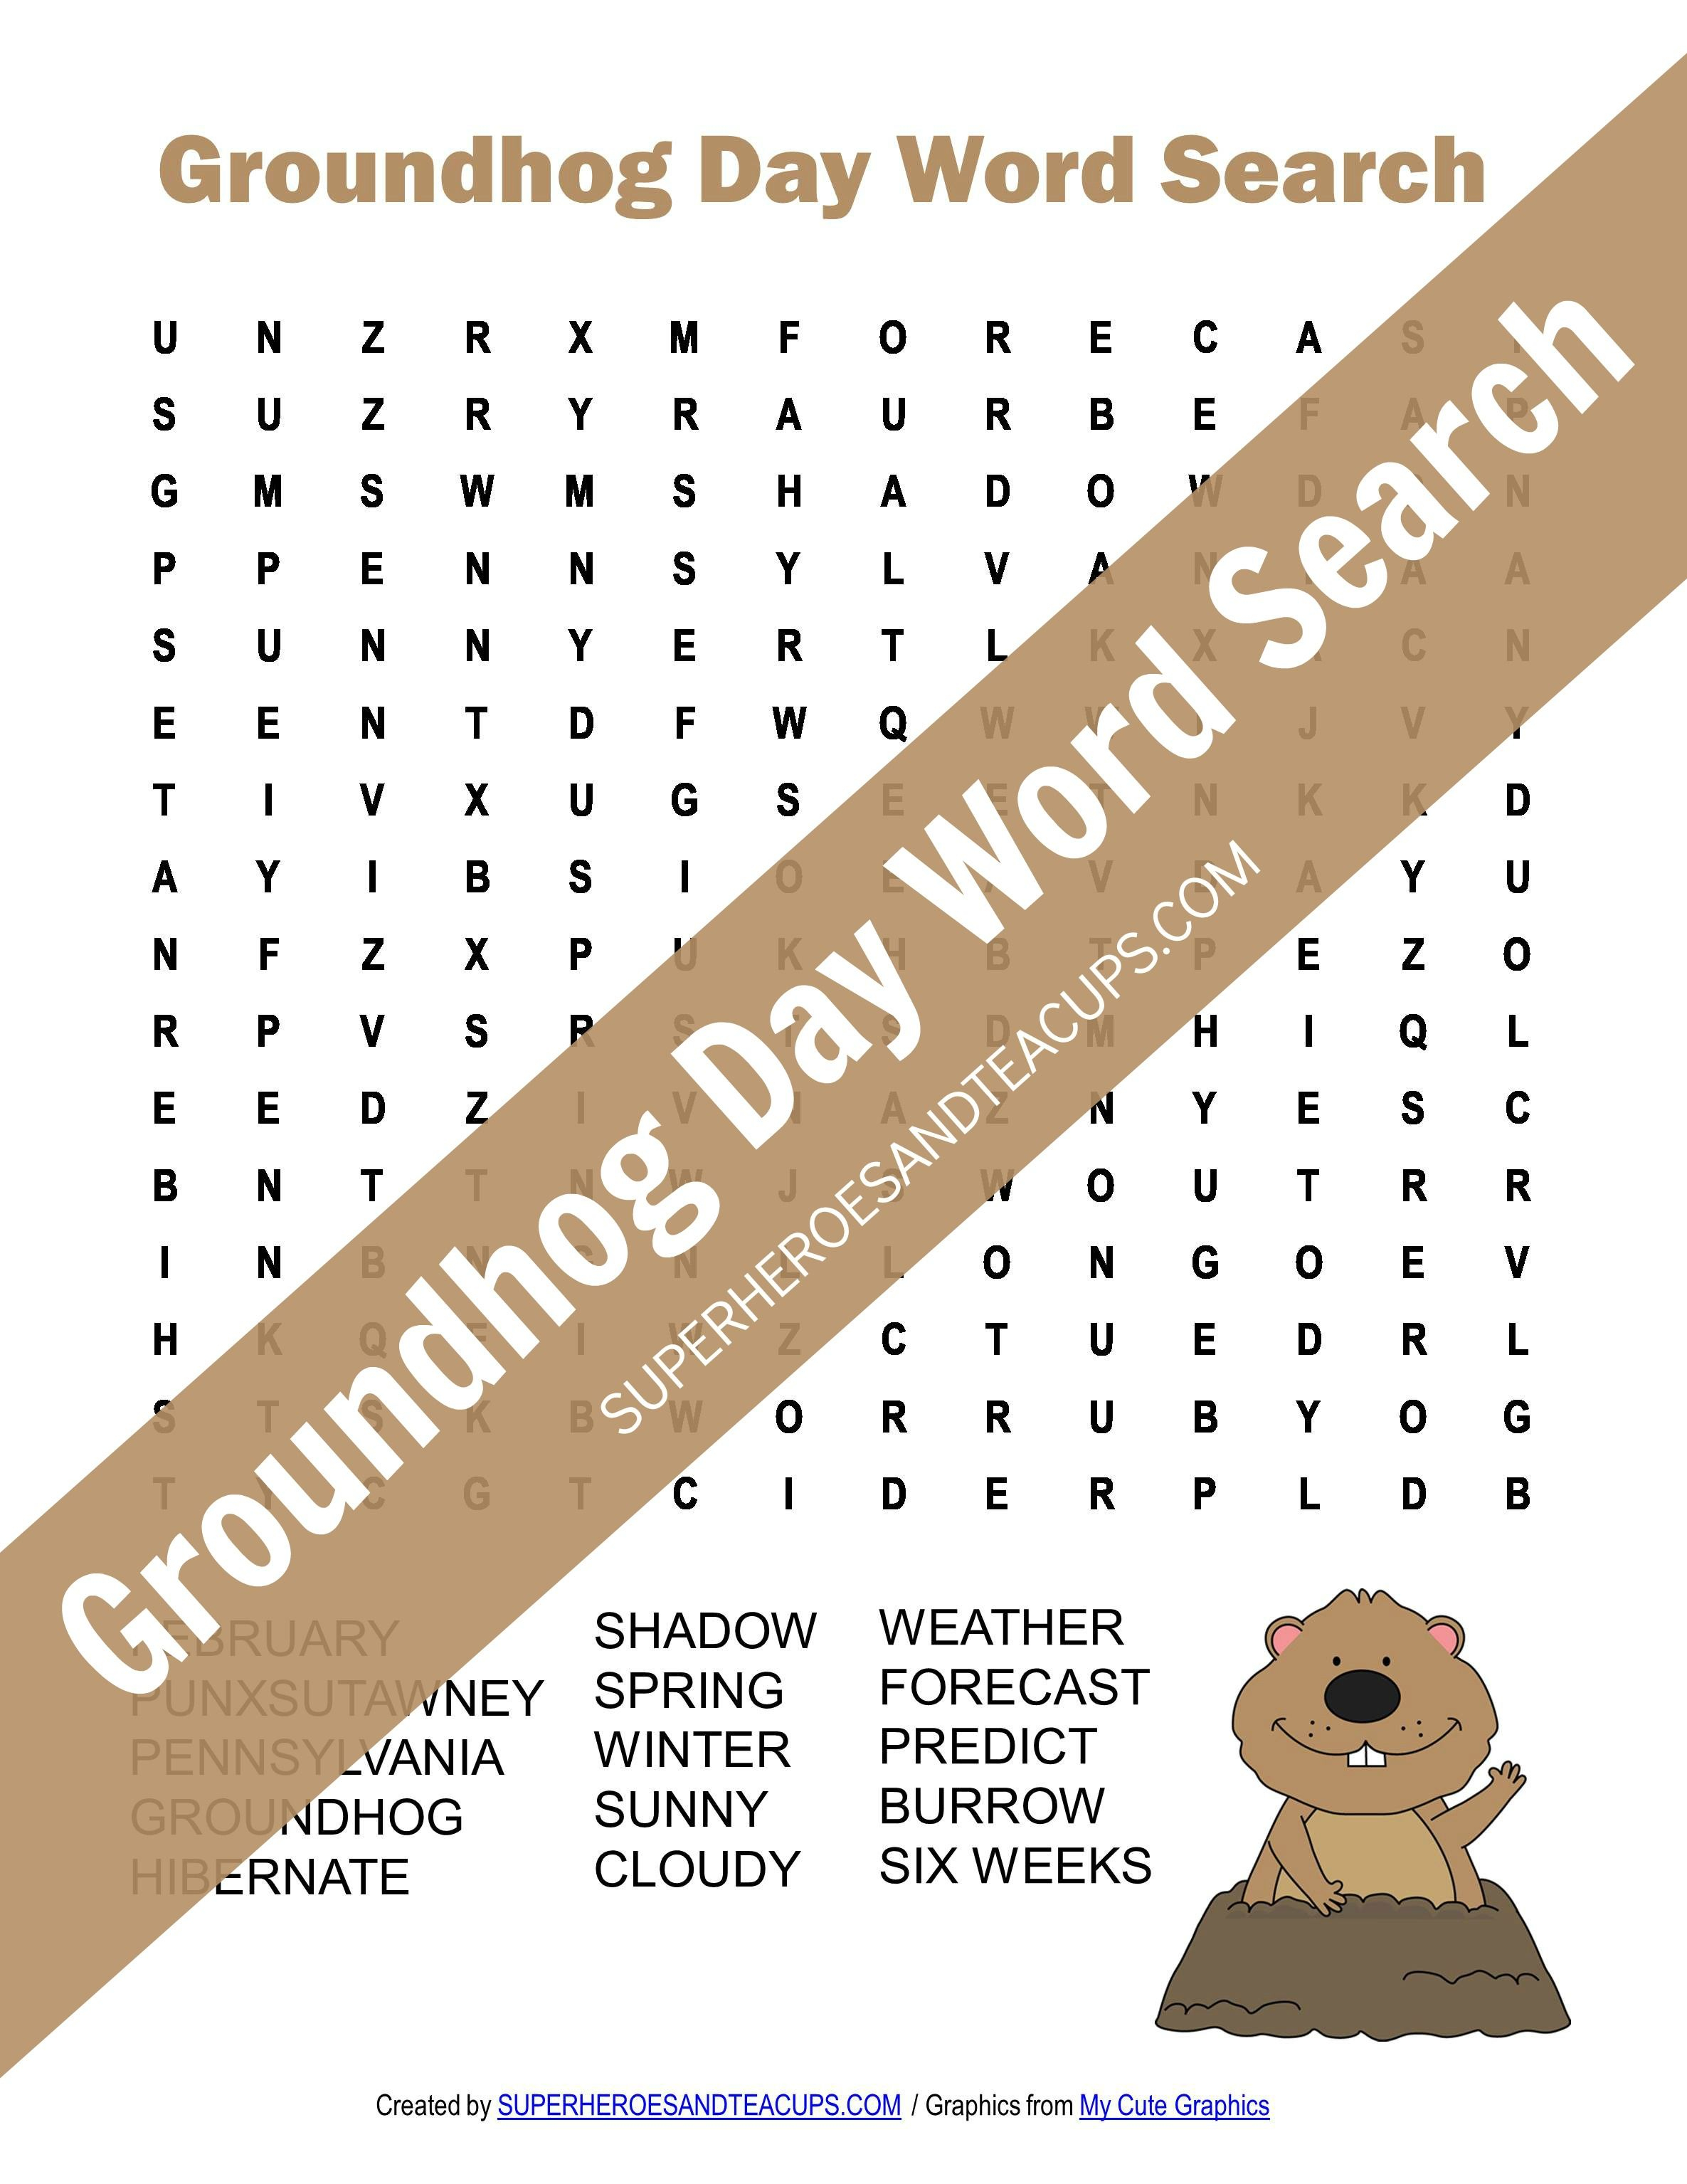 Groundhog Day Word Search Free Printable | Superheroes And Teacups - Groundhog Day Crossword Puzzles Printable